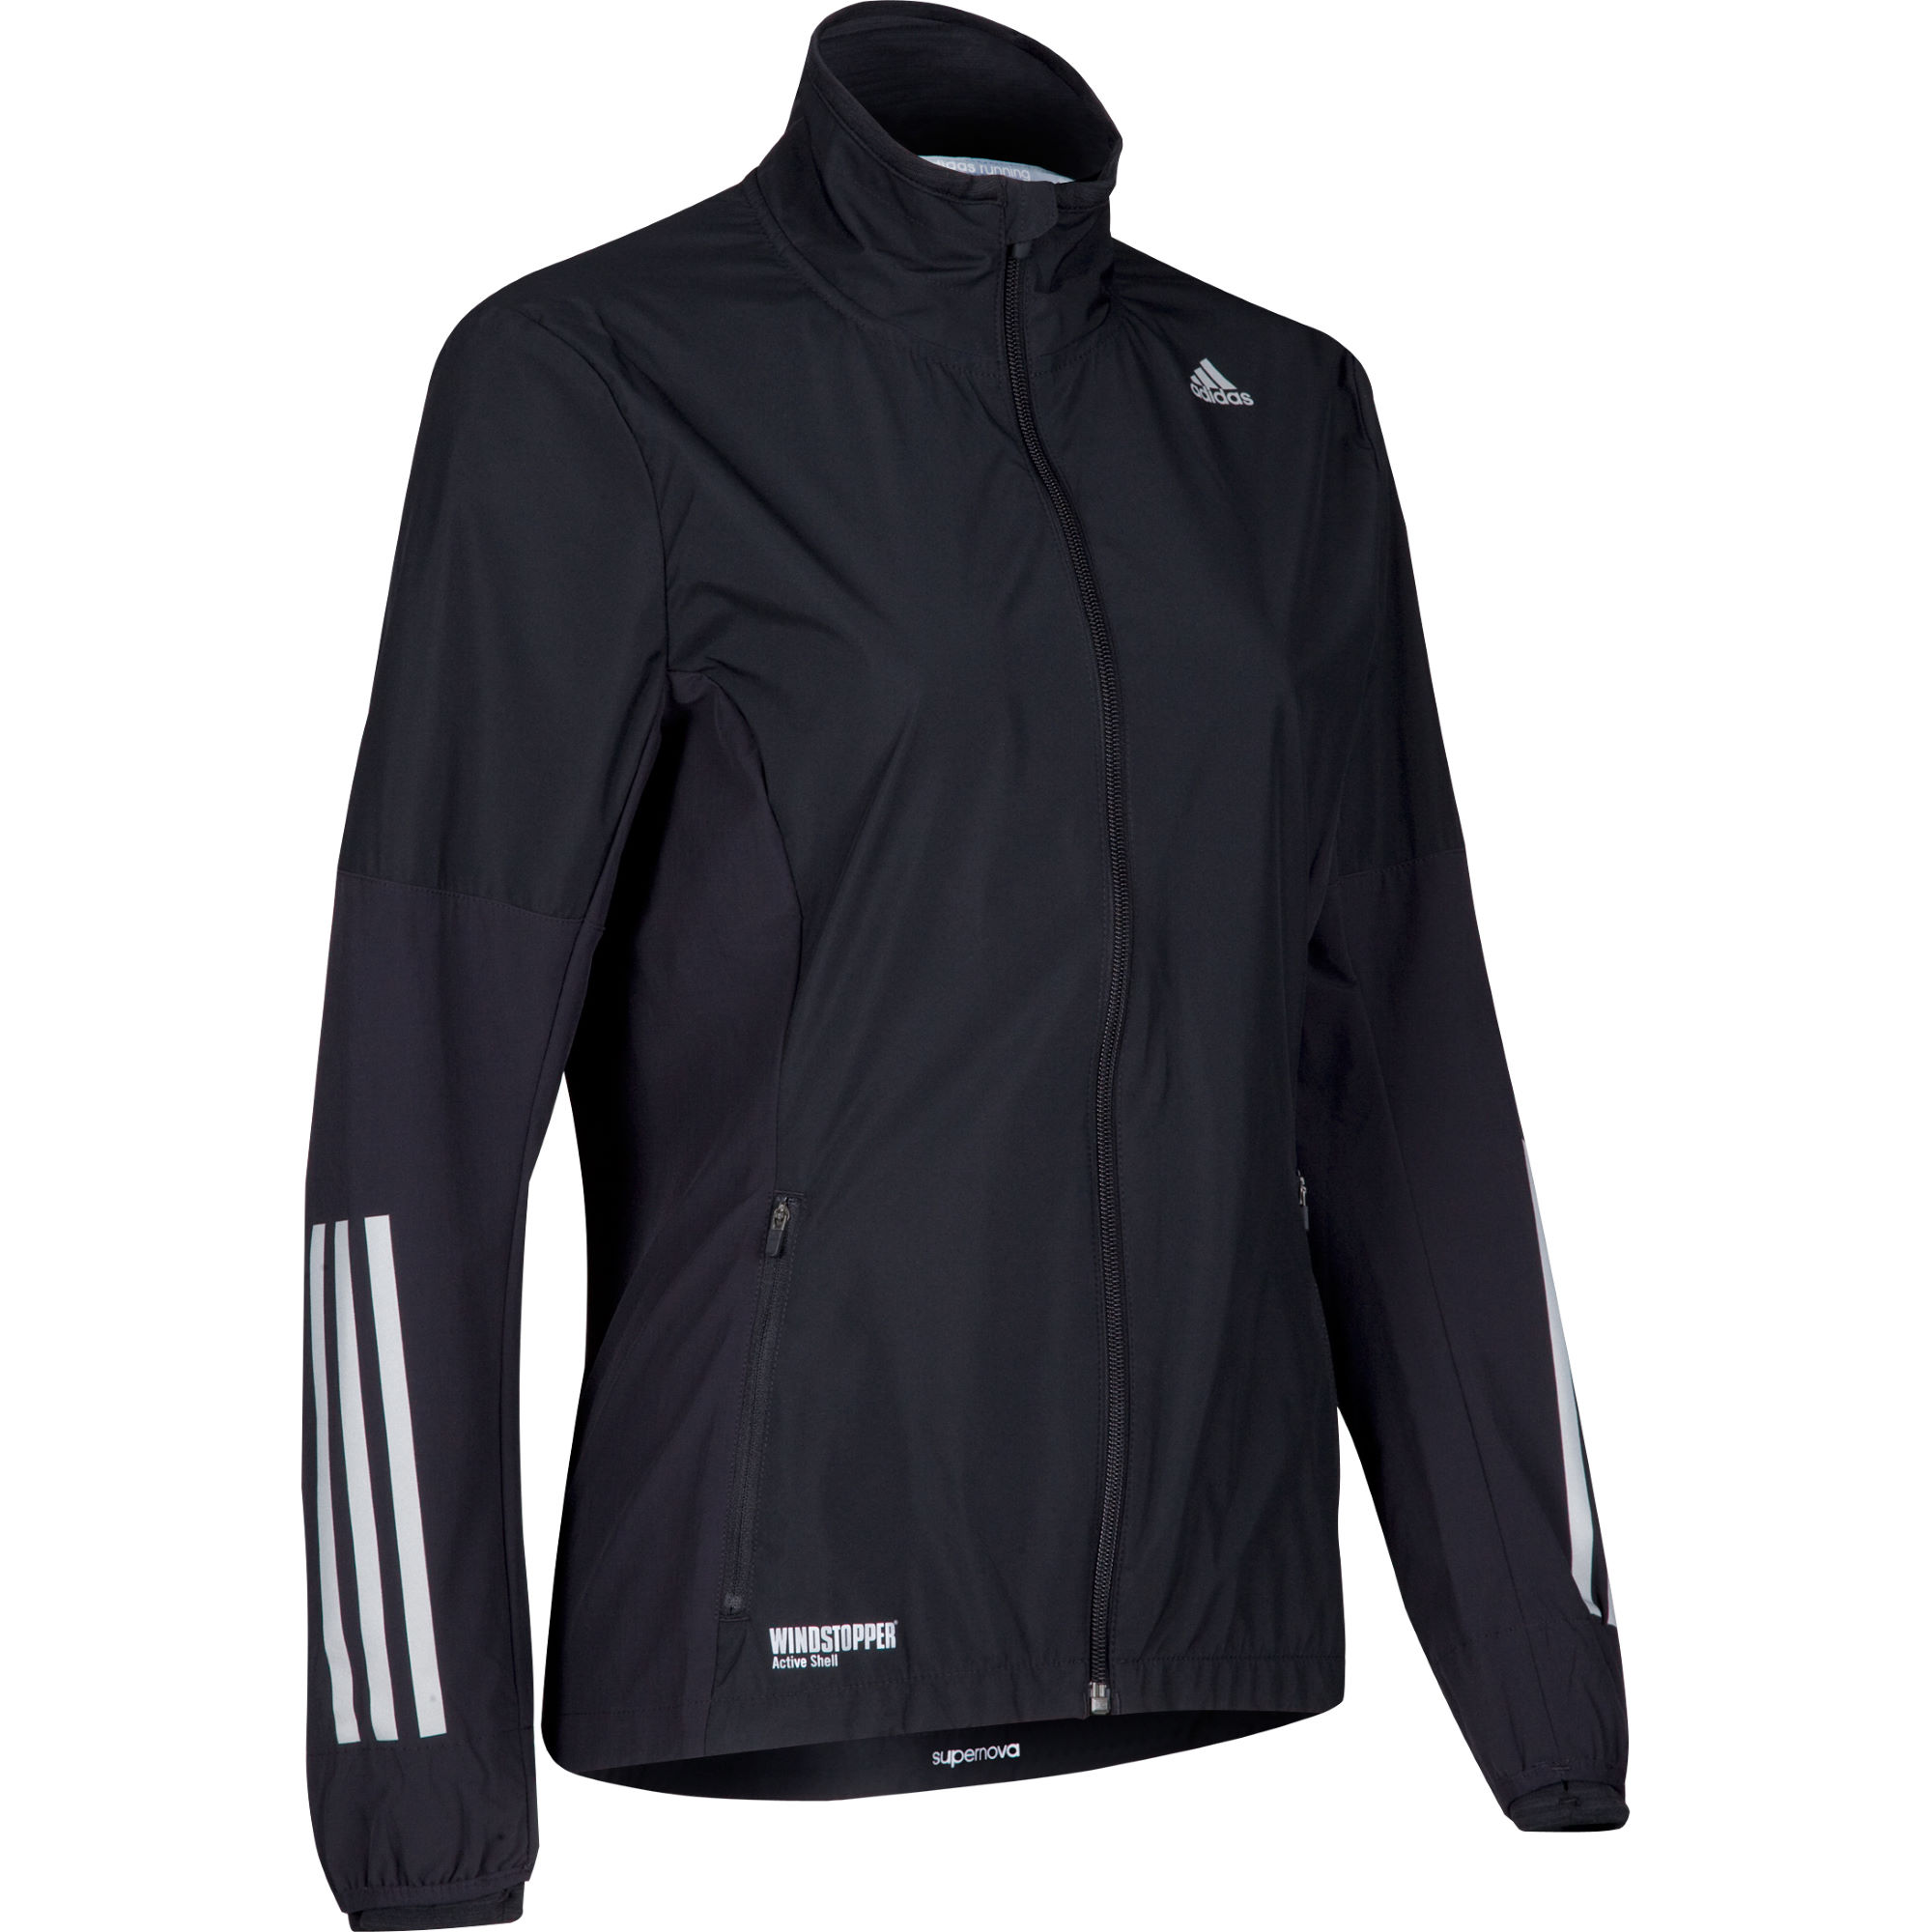 Vestes de running coupe-vent | Adidas | Women's Supernova Gore Windstopper Jacket - AW14 ...